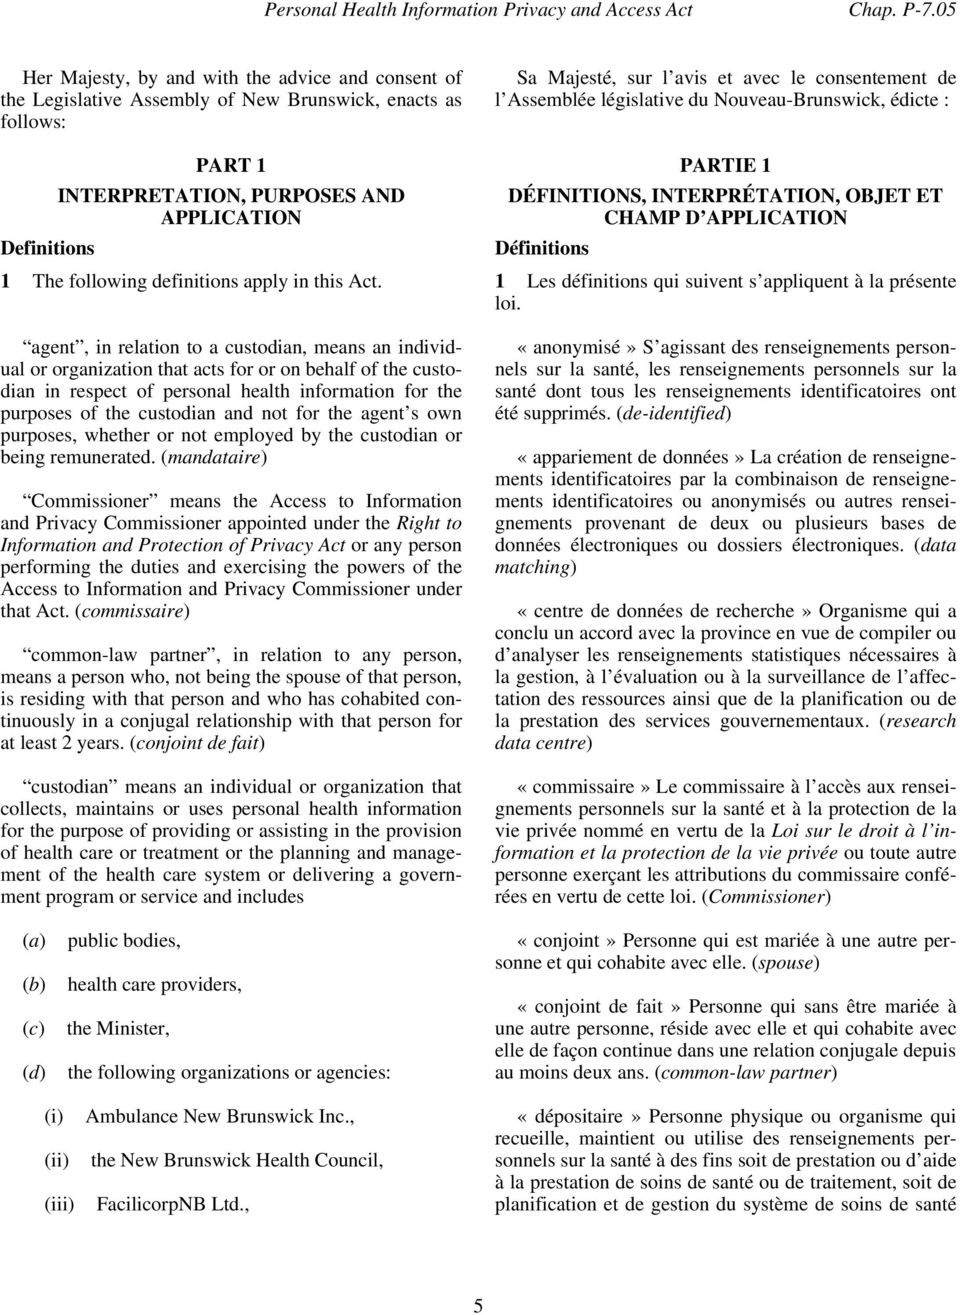 Nouveau-Brunswick, édicte : Definitions PART 1 INTERPRETATION, PURPOSES AND APPLICATION PARTIE 1 DÉFINITIONS, INTERPRÉTATION, OBJET ET CHAMP D APPLICATION Définitions 1 The following definitions